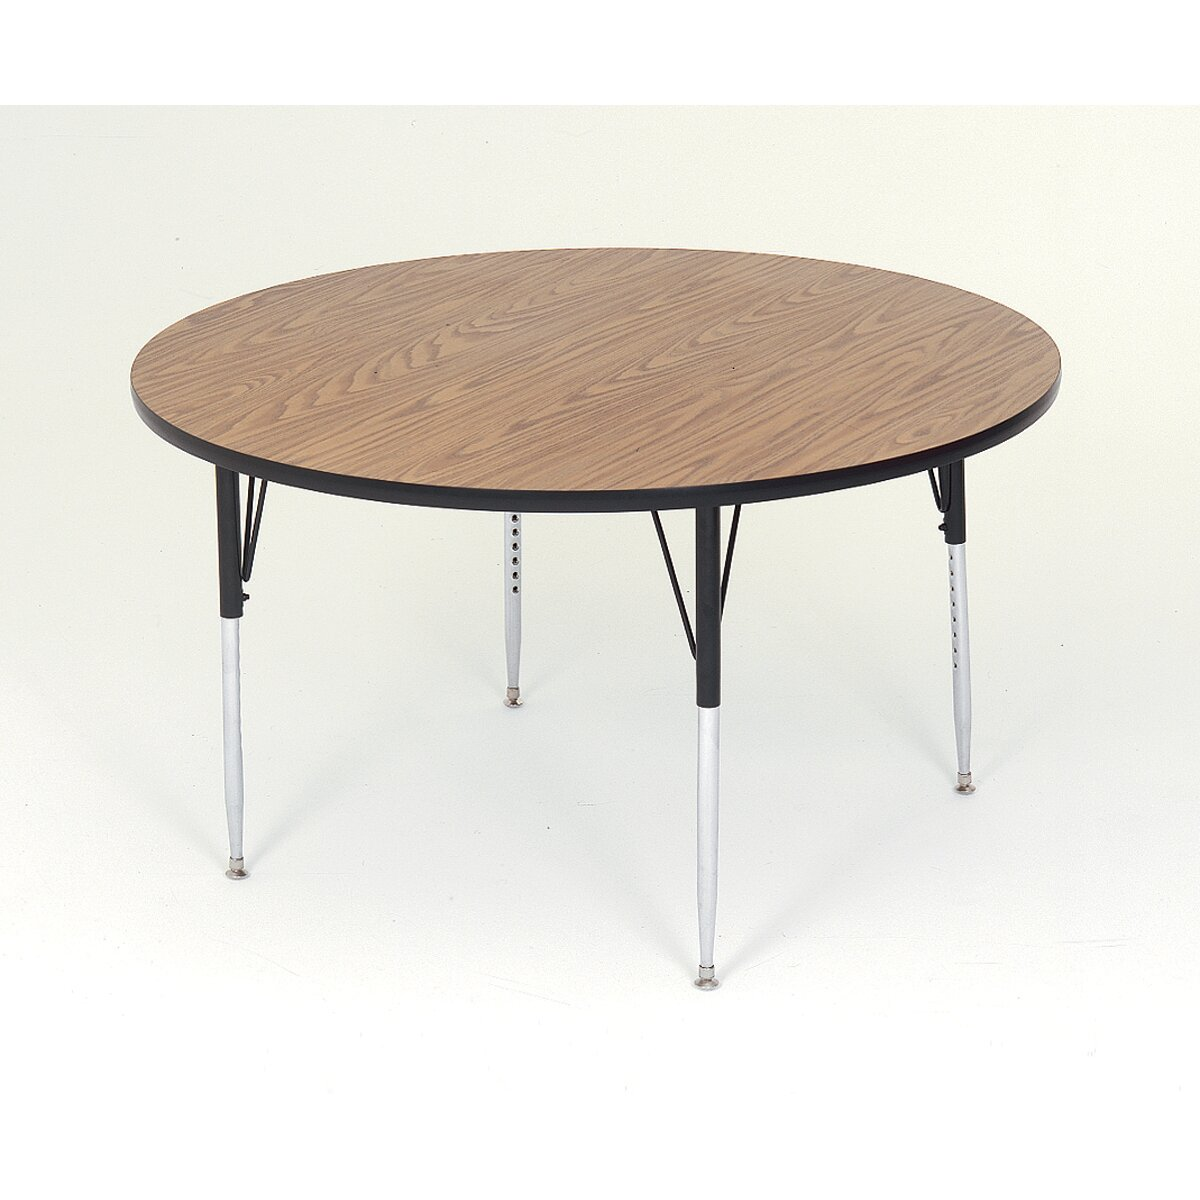 Correll inc 36 round activity table wayfair for Short table legs